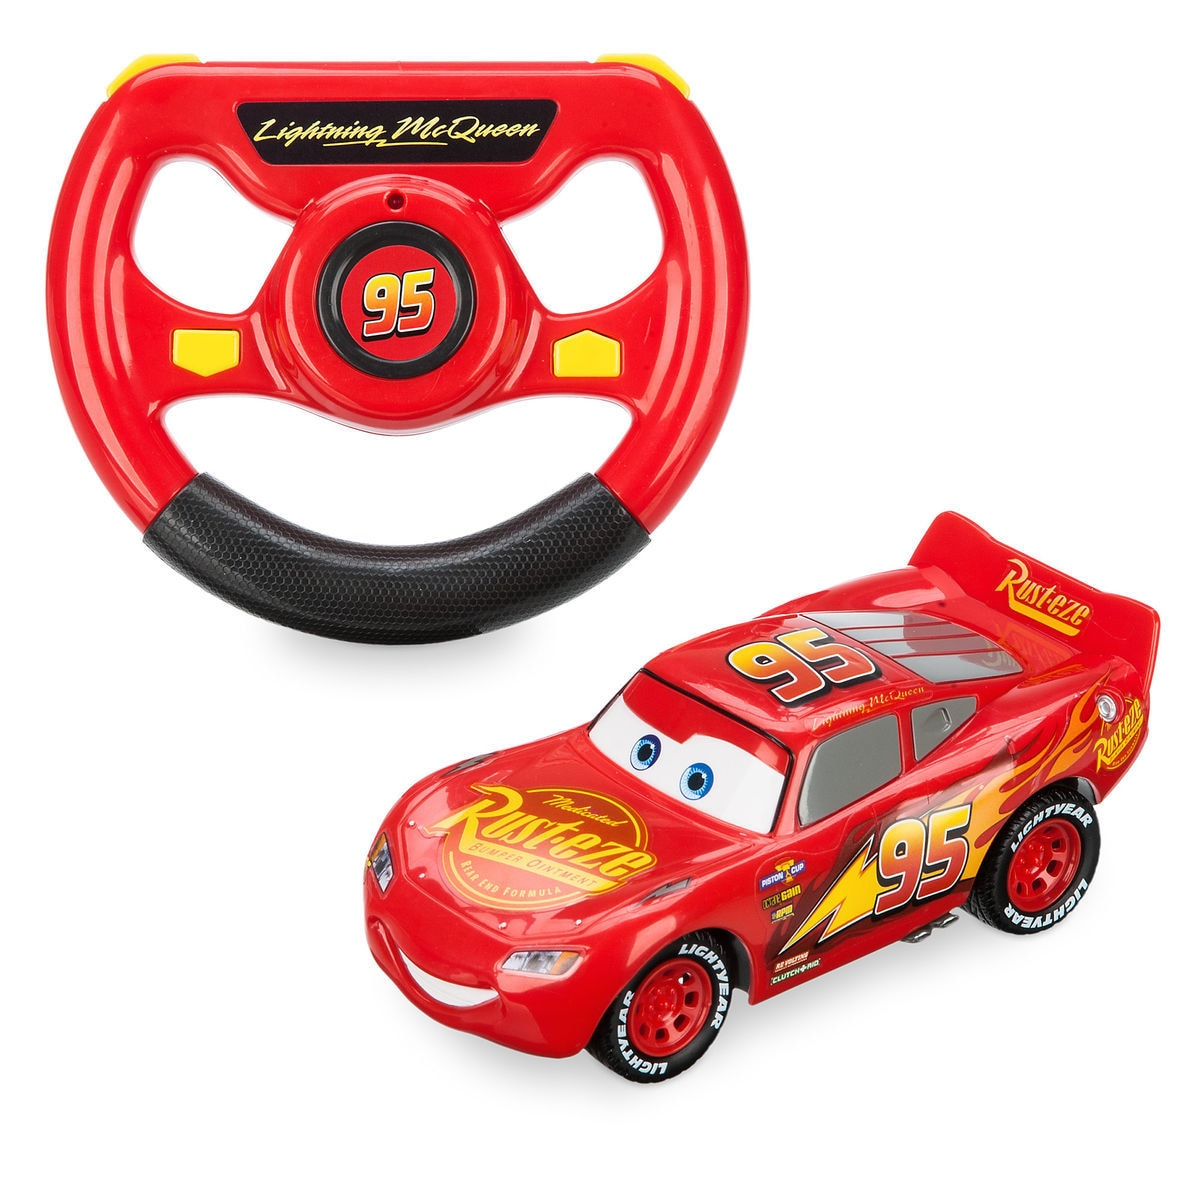 Lightning McQueen Remote Control Vehicle | shopDisney